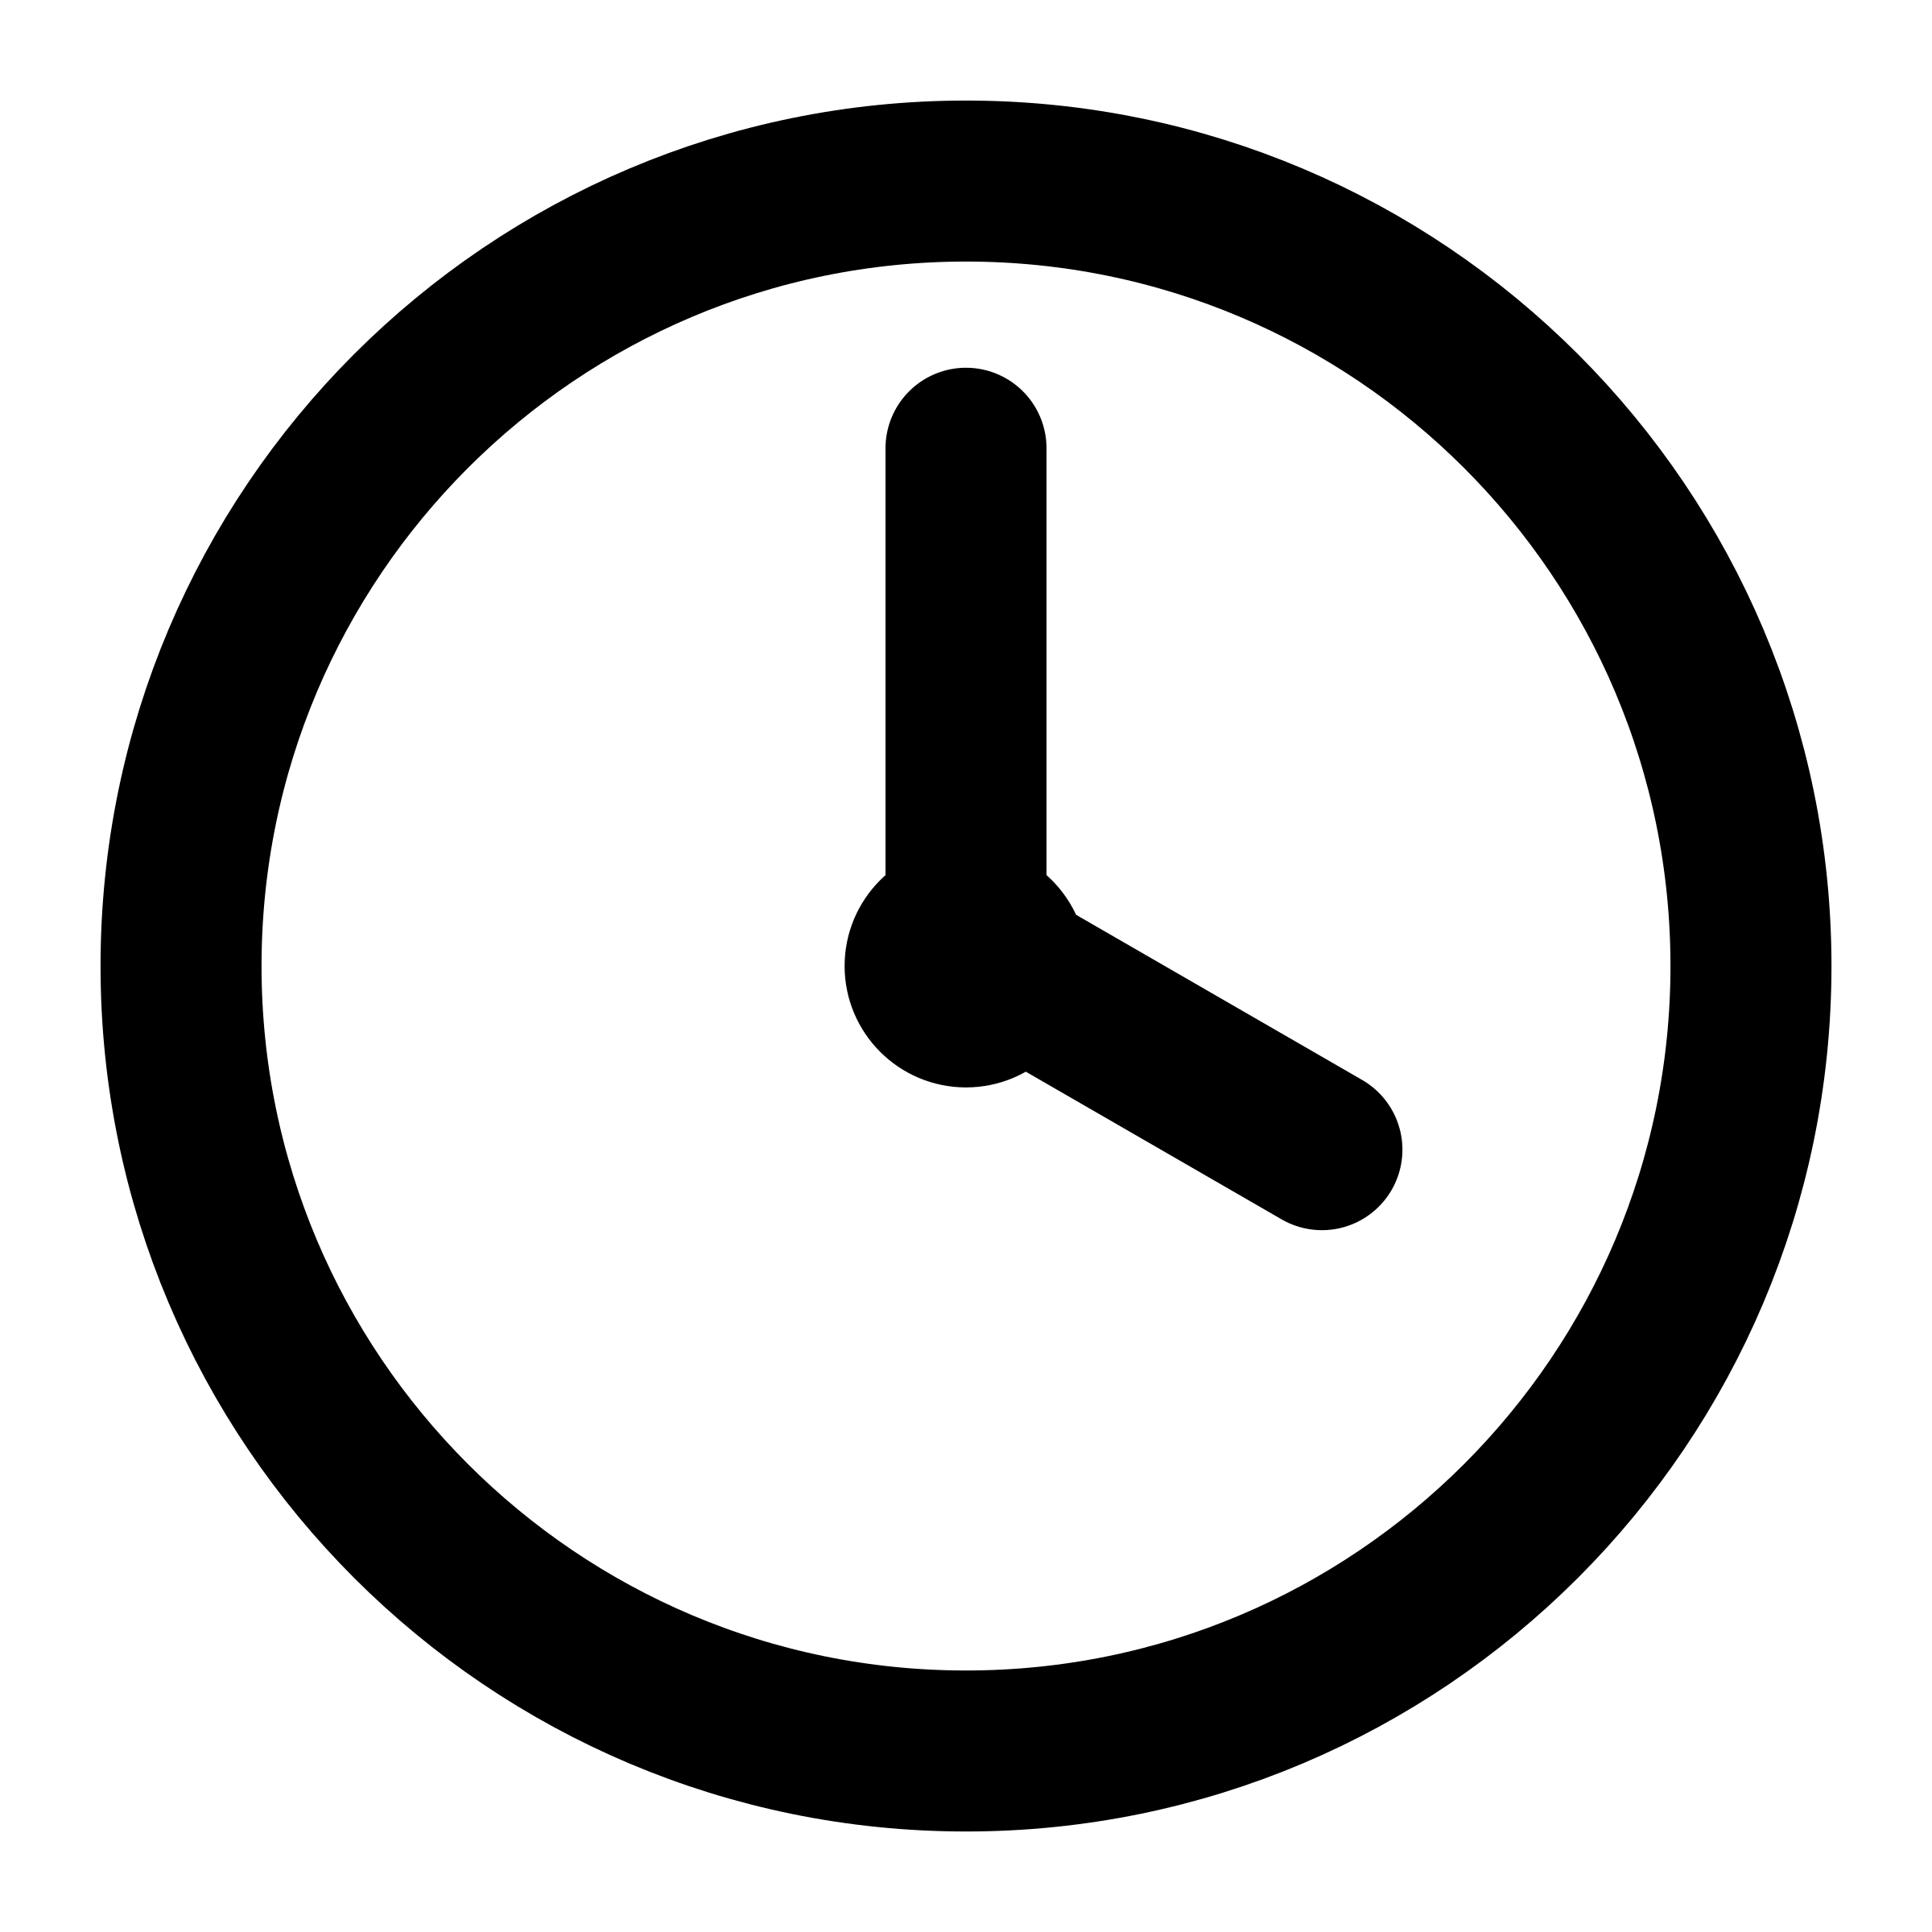 Clock clipart number.  collection of black